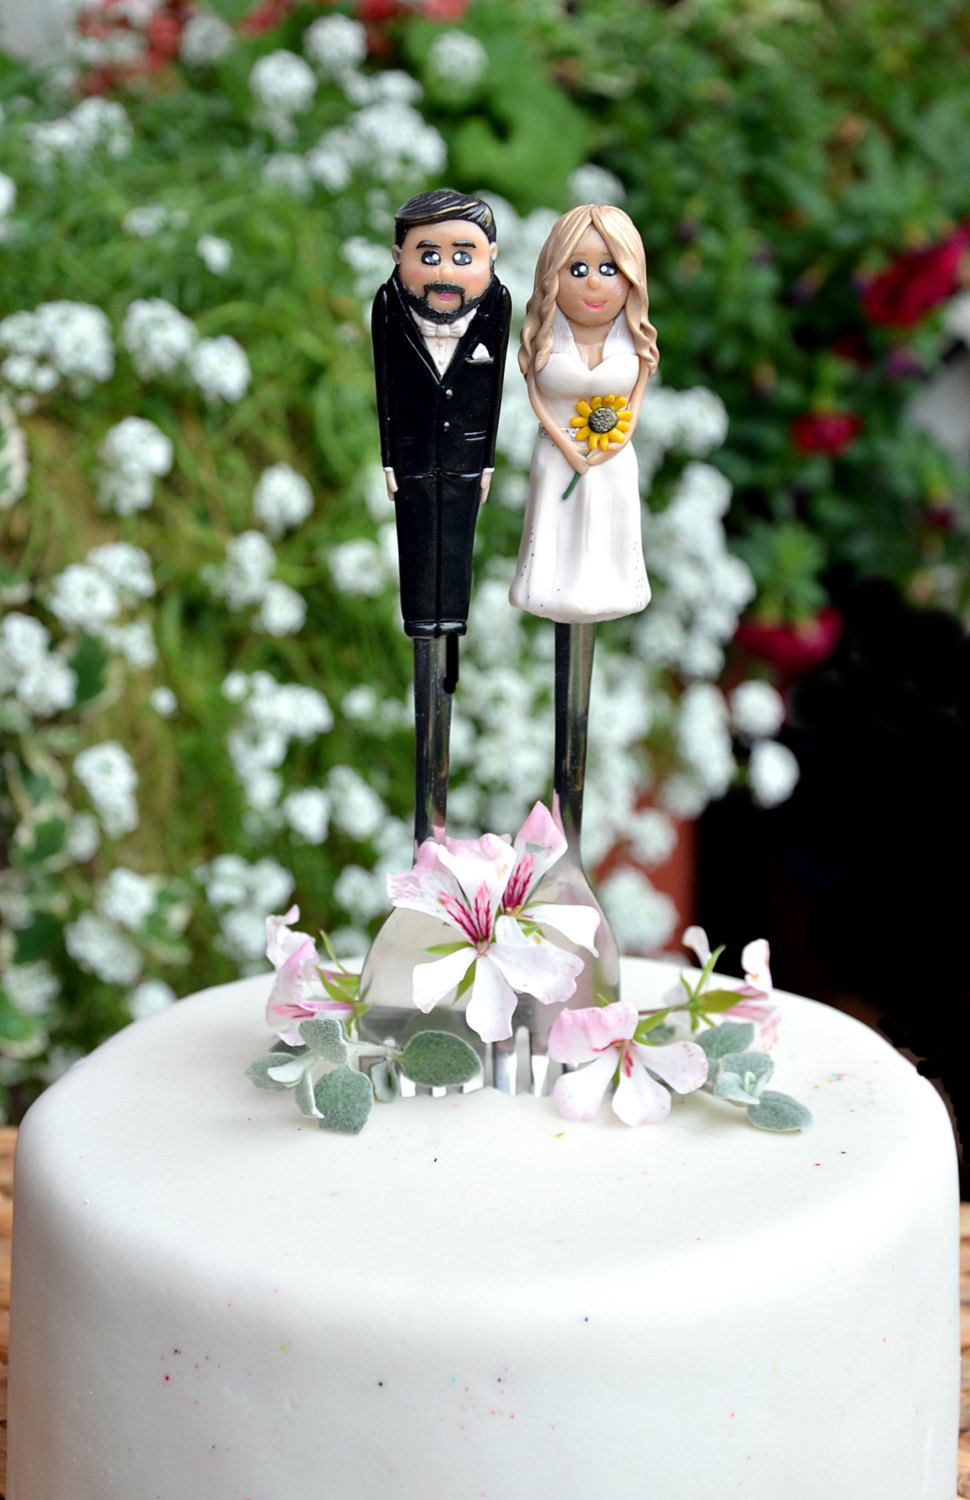 sunflower wedding cake topper by RadArtaDesign